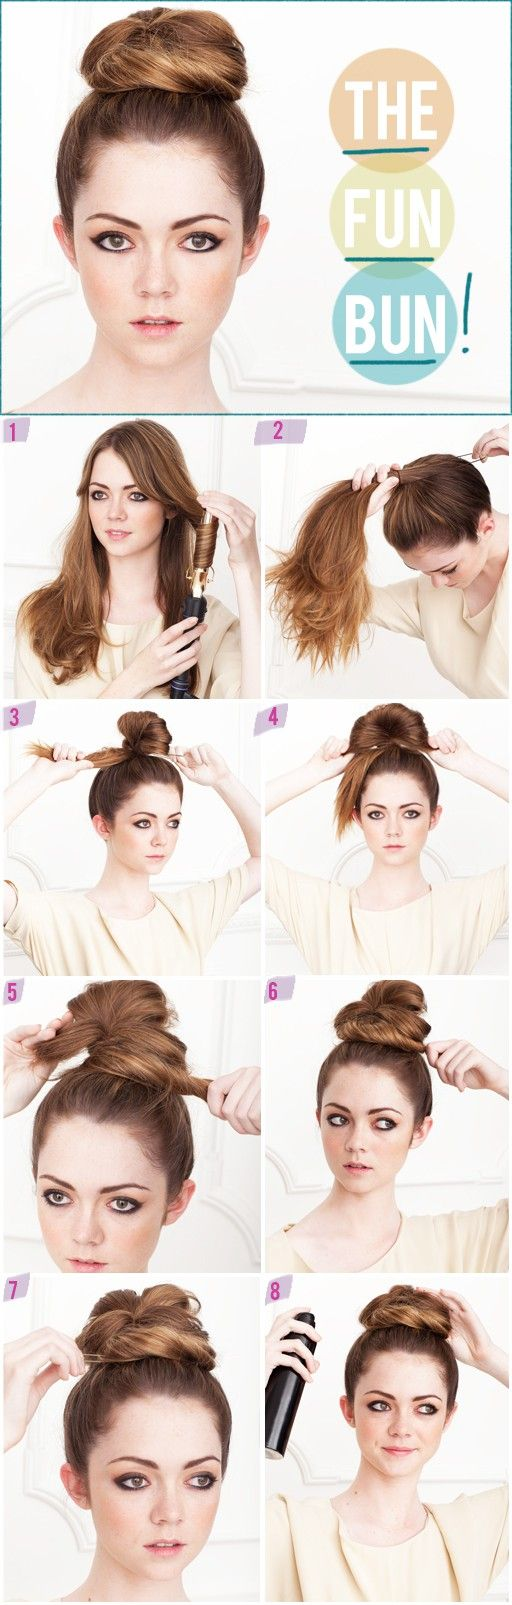 """The fun bun. For people who want I take that messy """"I don't care what people think so I'm cool"""" hair to more sophisticated level."""